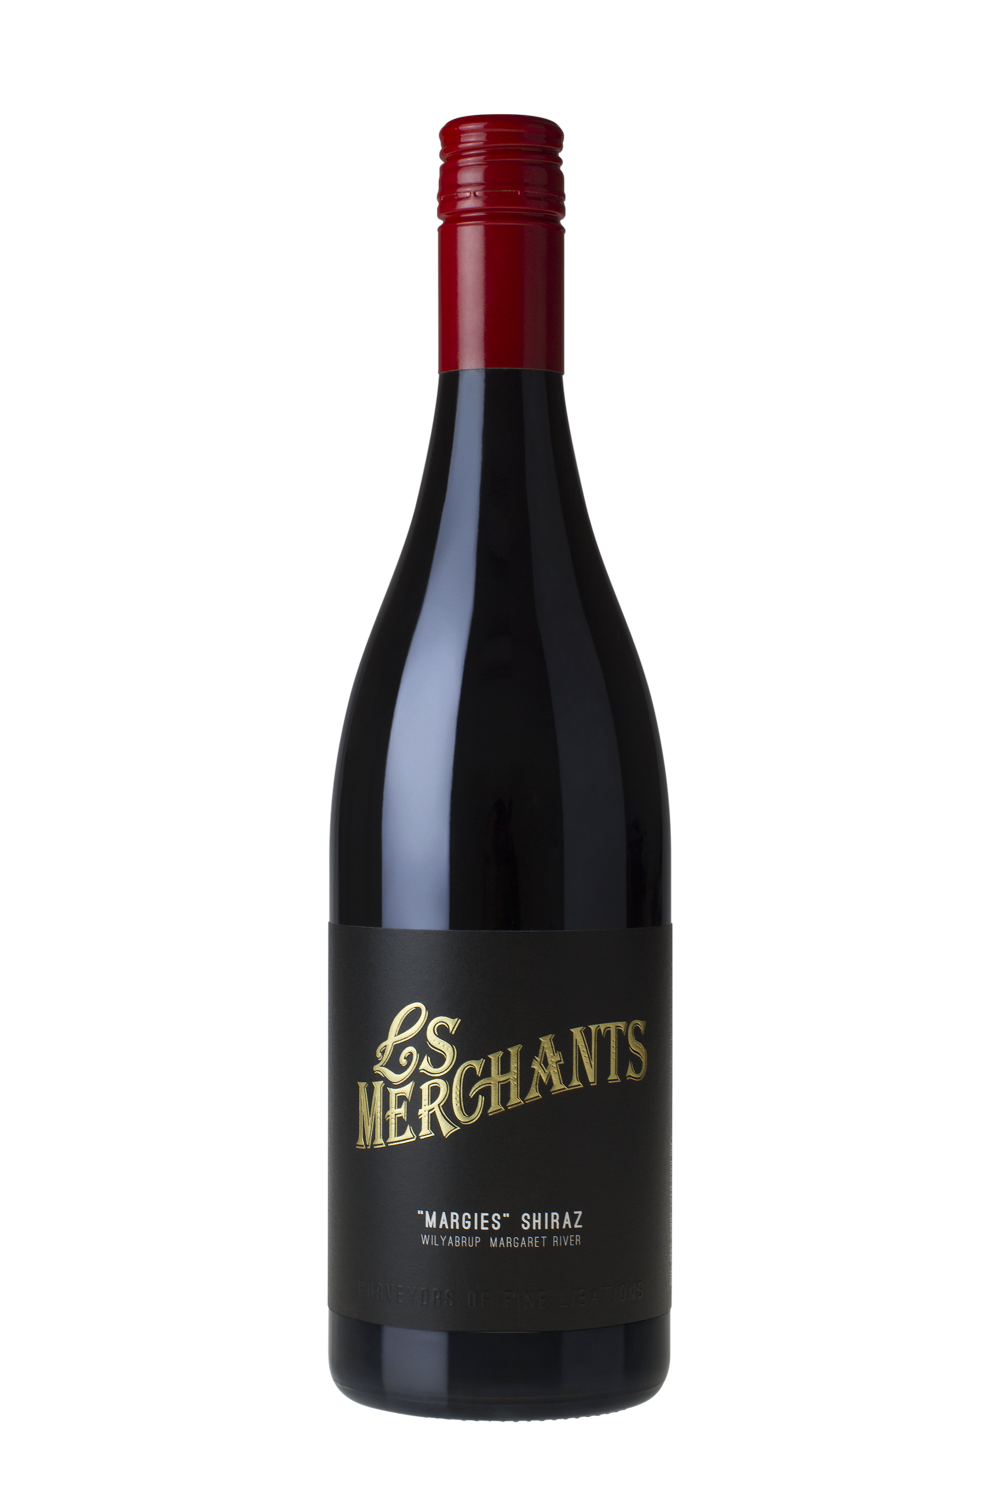 Margies Shiraz  One of our most popular wines, sourced from a block in the heart of Wilyabrup with gravelly soils. The 'Margies' Shiraz embodies the Mediterranean climate, showing fruit density, power and elegance at the same time.  Black forest cake with dark cherries and a slight char. Elegant yet powerful.